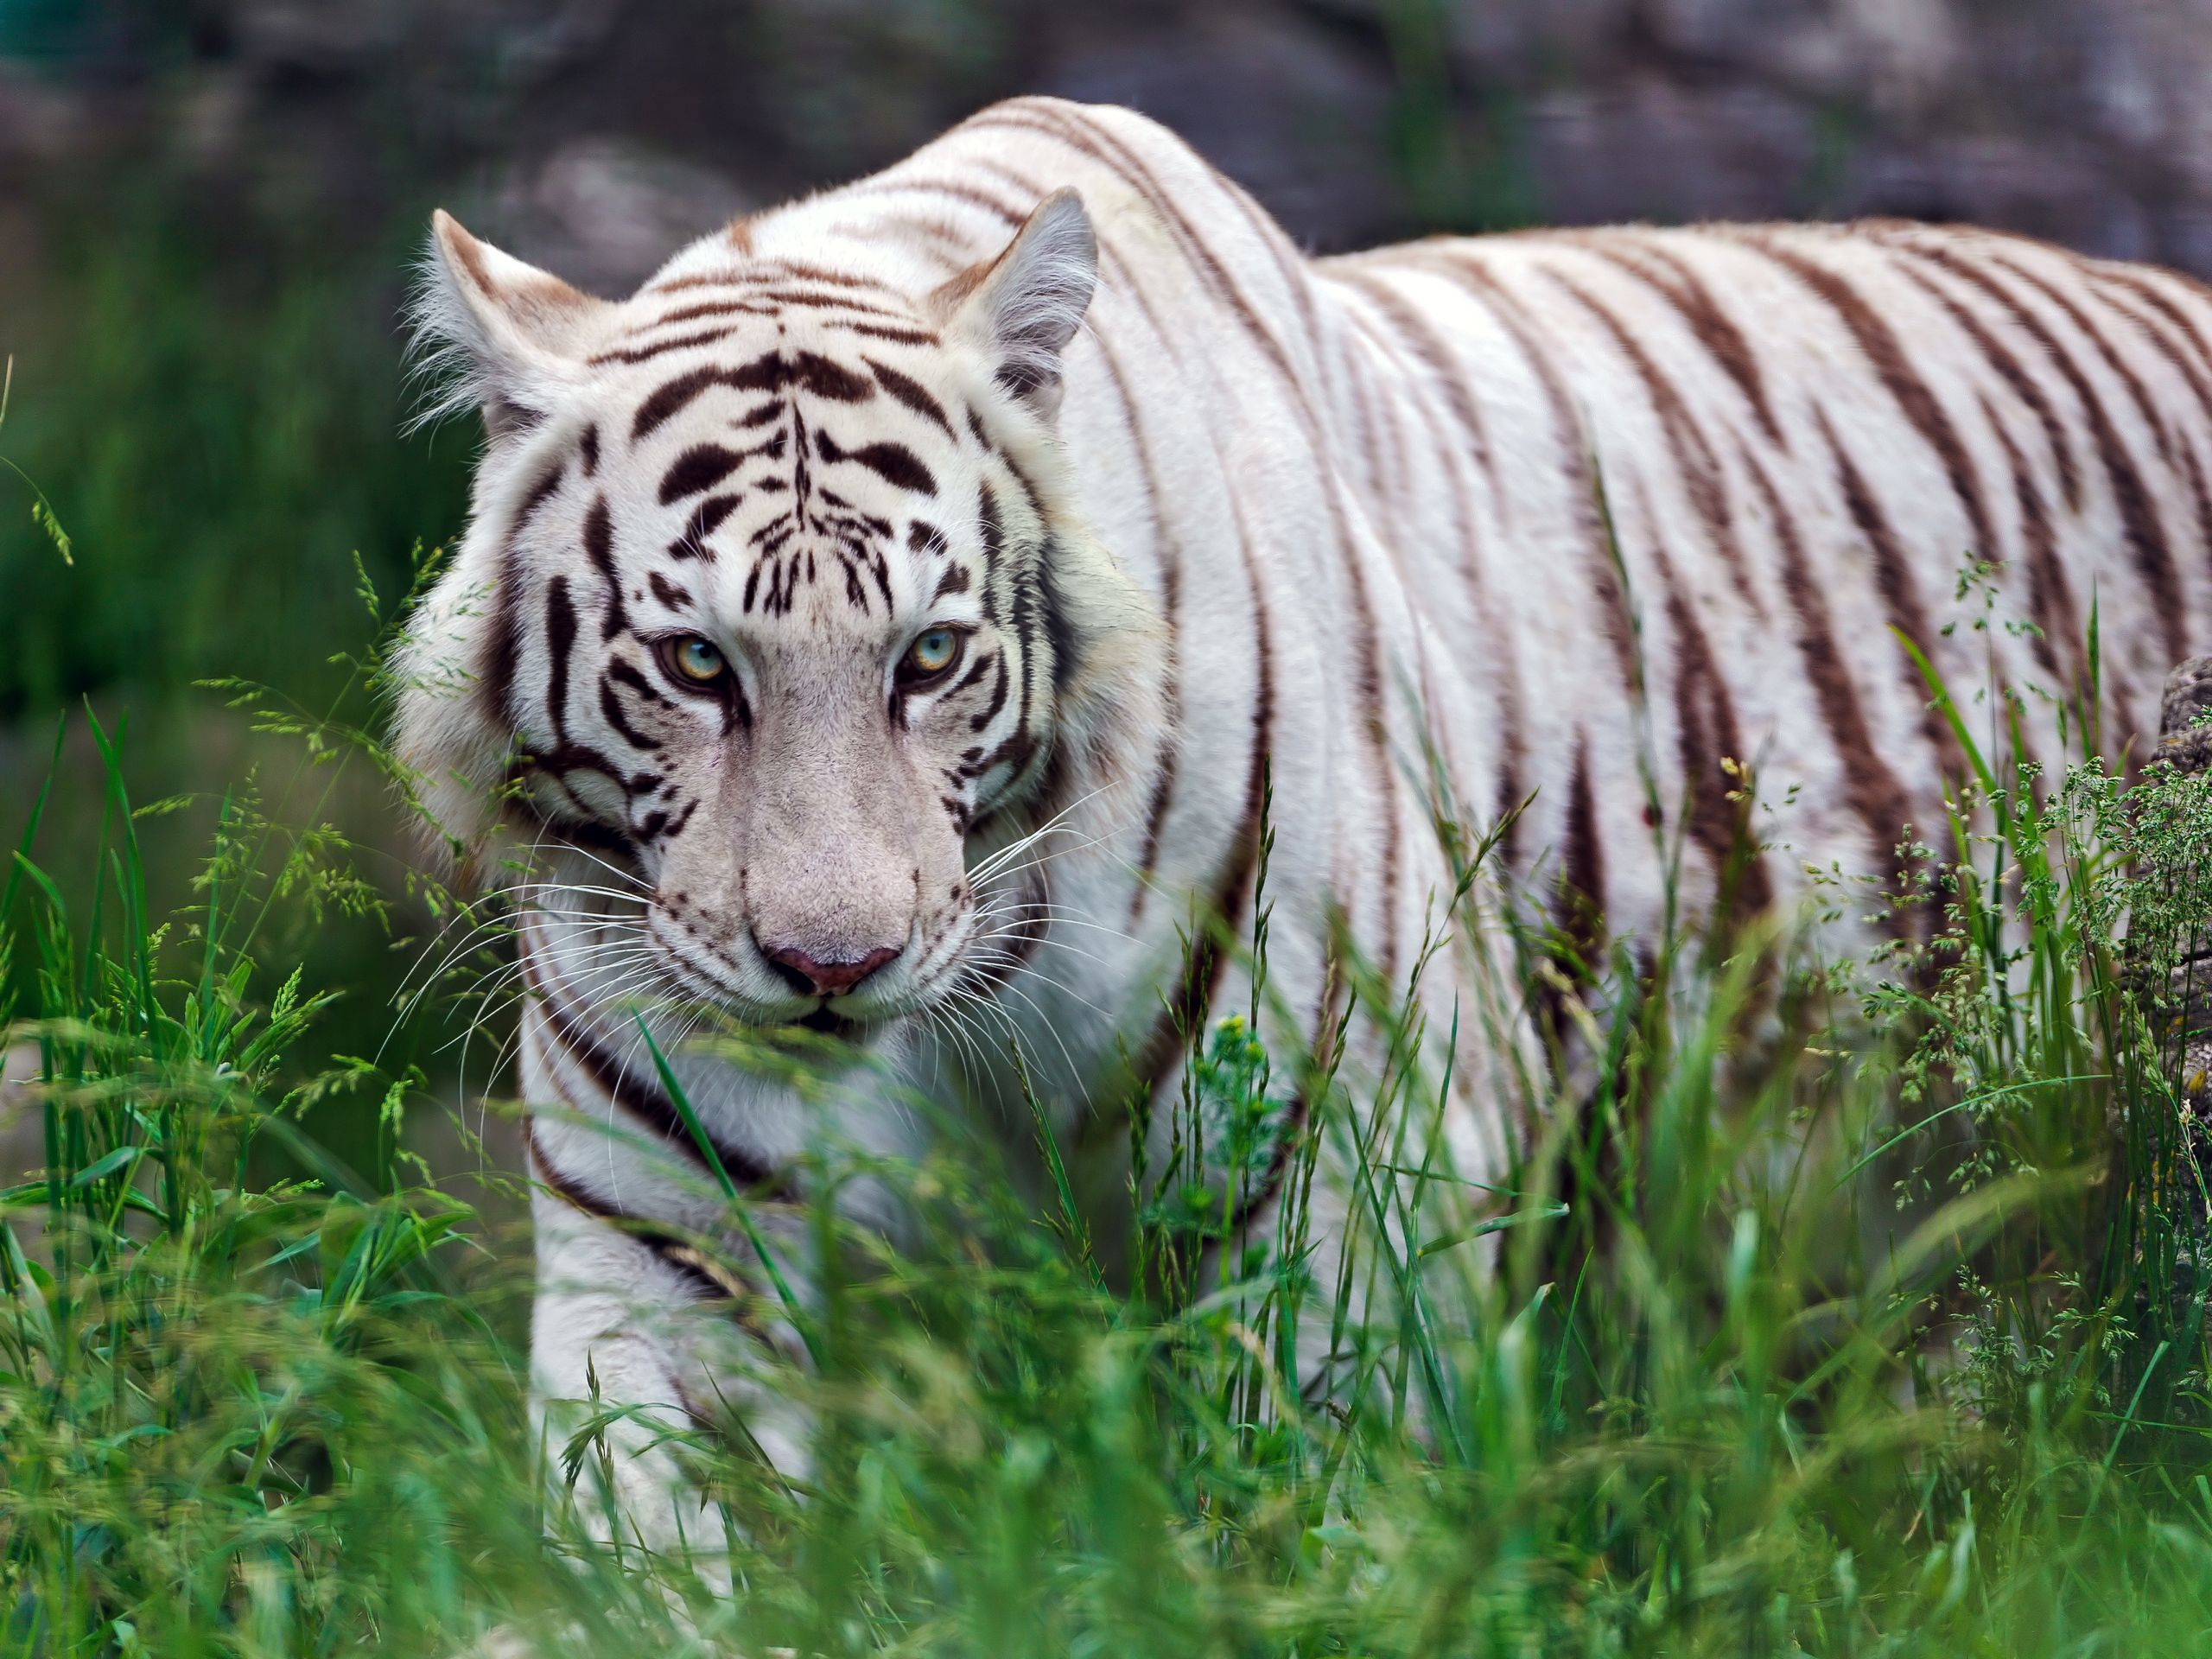 is under the tiger wallpapers category of hd wallpapers white 2560x1920